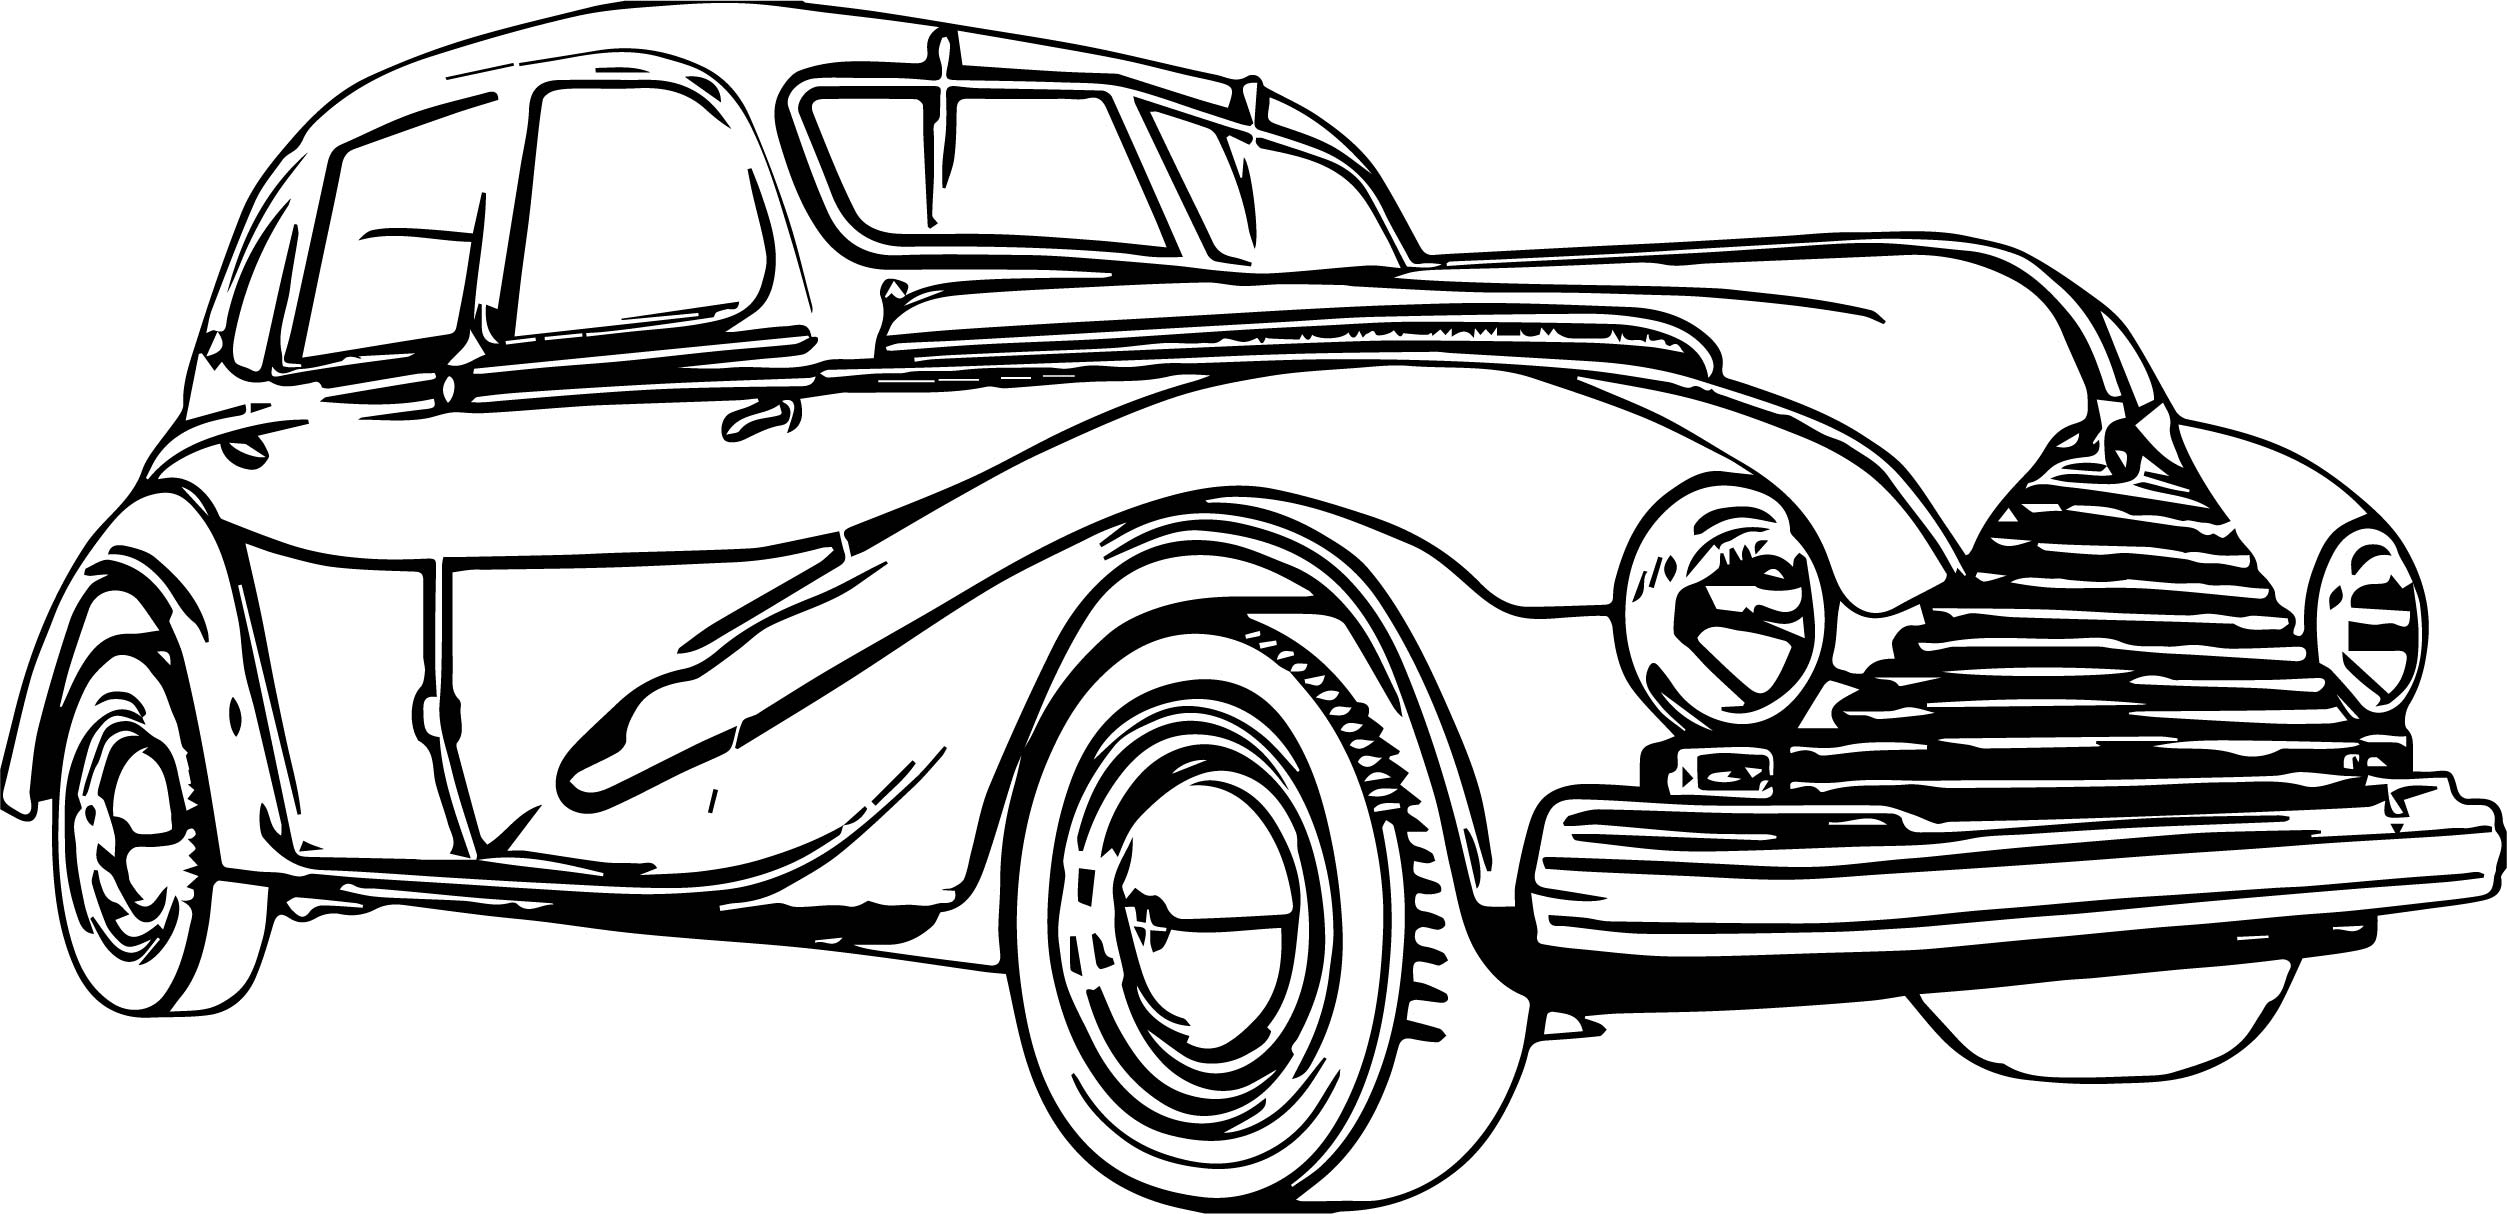 coloring pages antique cars | Small Vintage Antique Car Coloring Page | Wecoloringpage.com